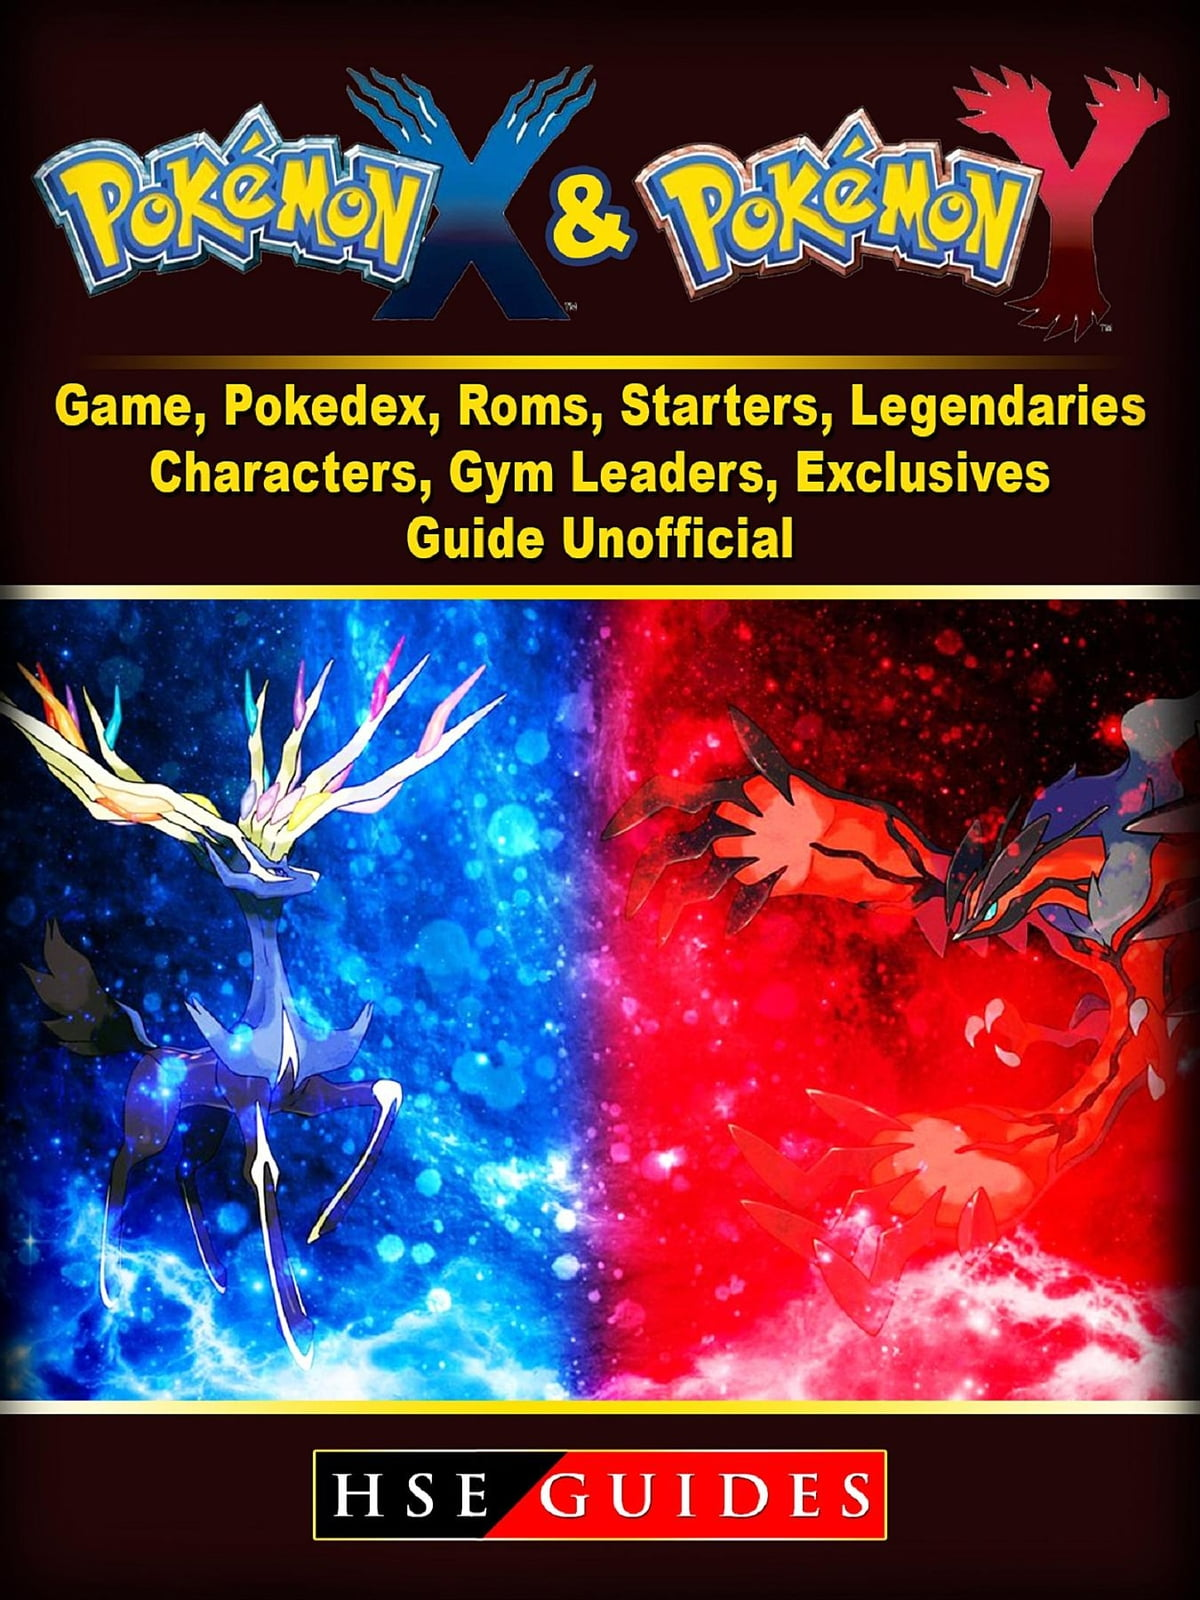 Pokemon X and Y Game, Pokedex, Roms, Starters, Legendaries, Characters, Gym  Leaders, Exclusives, Guide Unofficial ebook by HSE Guides - Rakuten Kobo